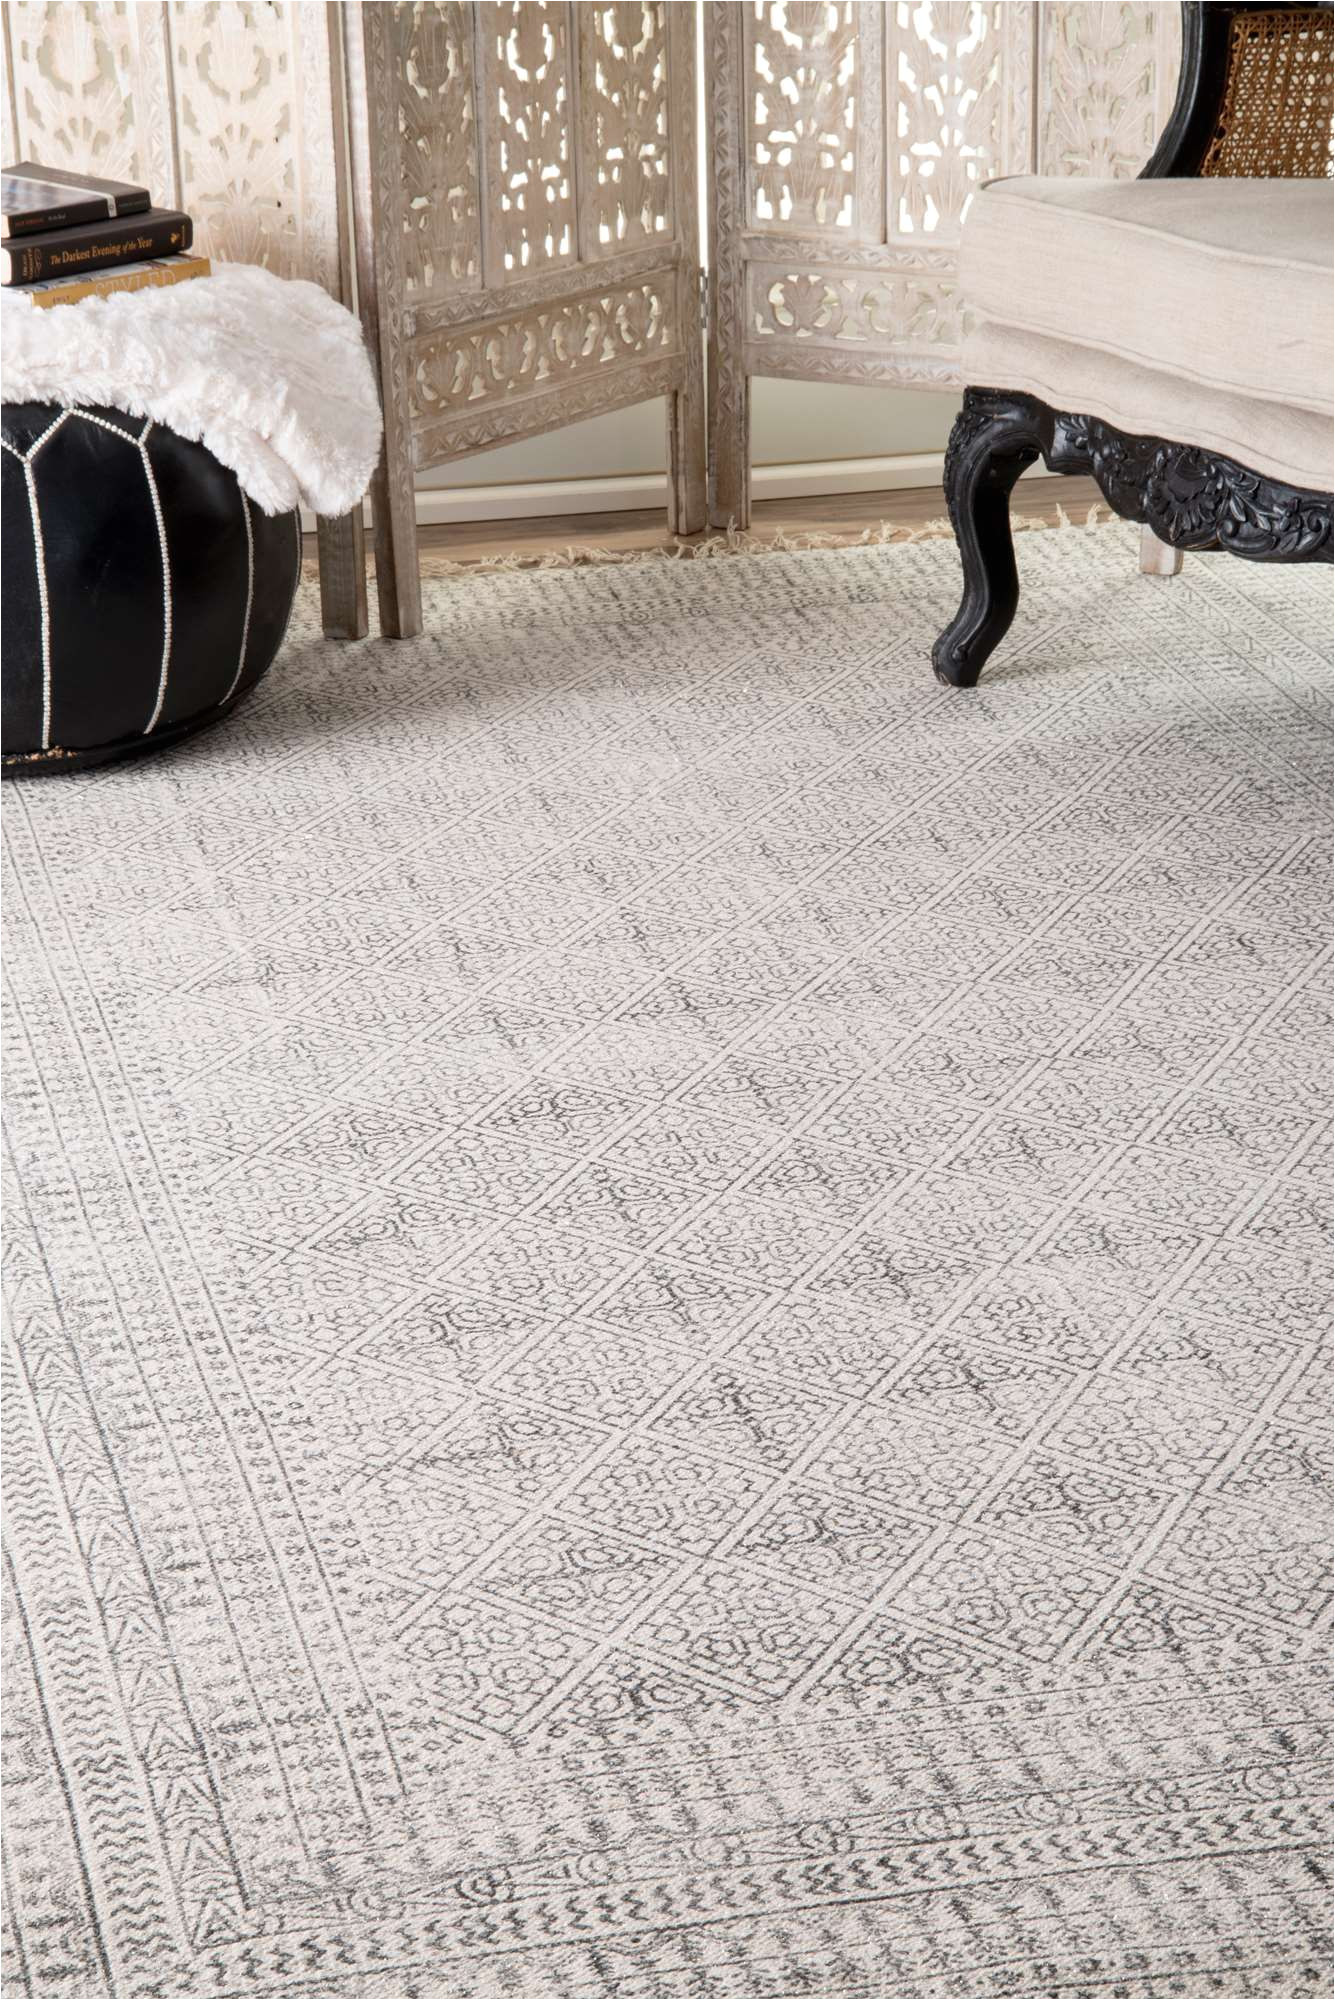 rugs usa area rugs in many styles including contemporary braided outdoor and flokati shag rugs buy rugs at america s home decorating superstorearea rugs